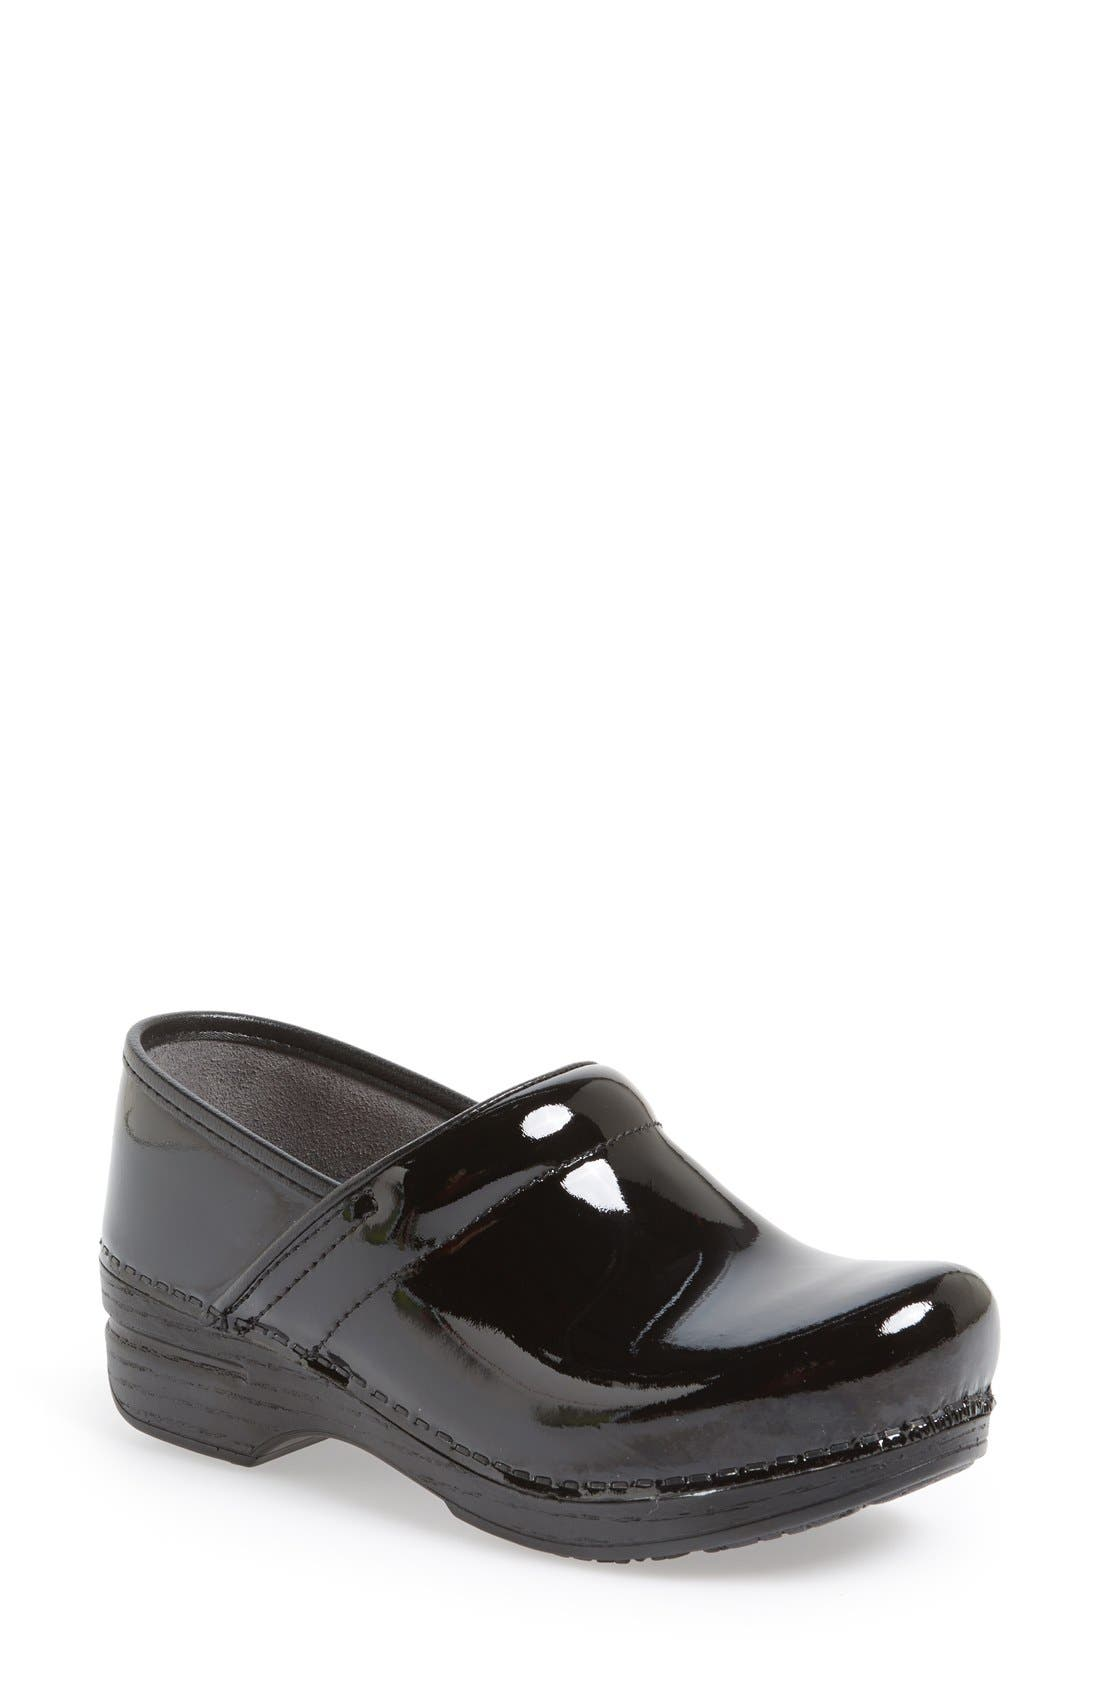 DANSKO 'Professional XP' Clog, Main, color, BLACK PATENT/ BLACK